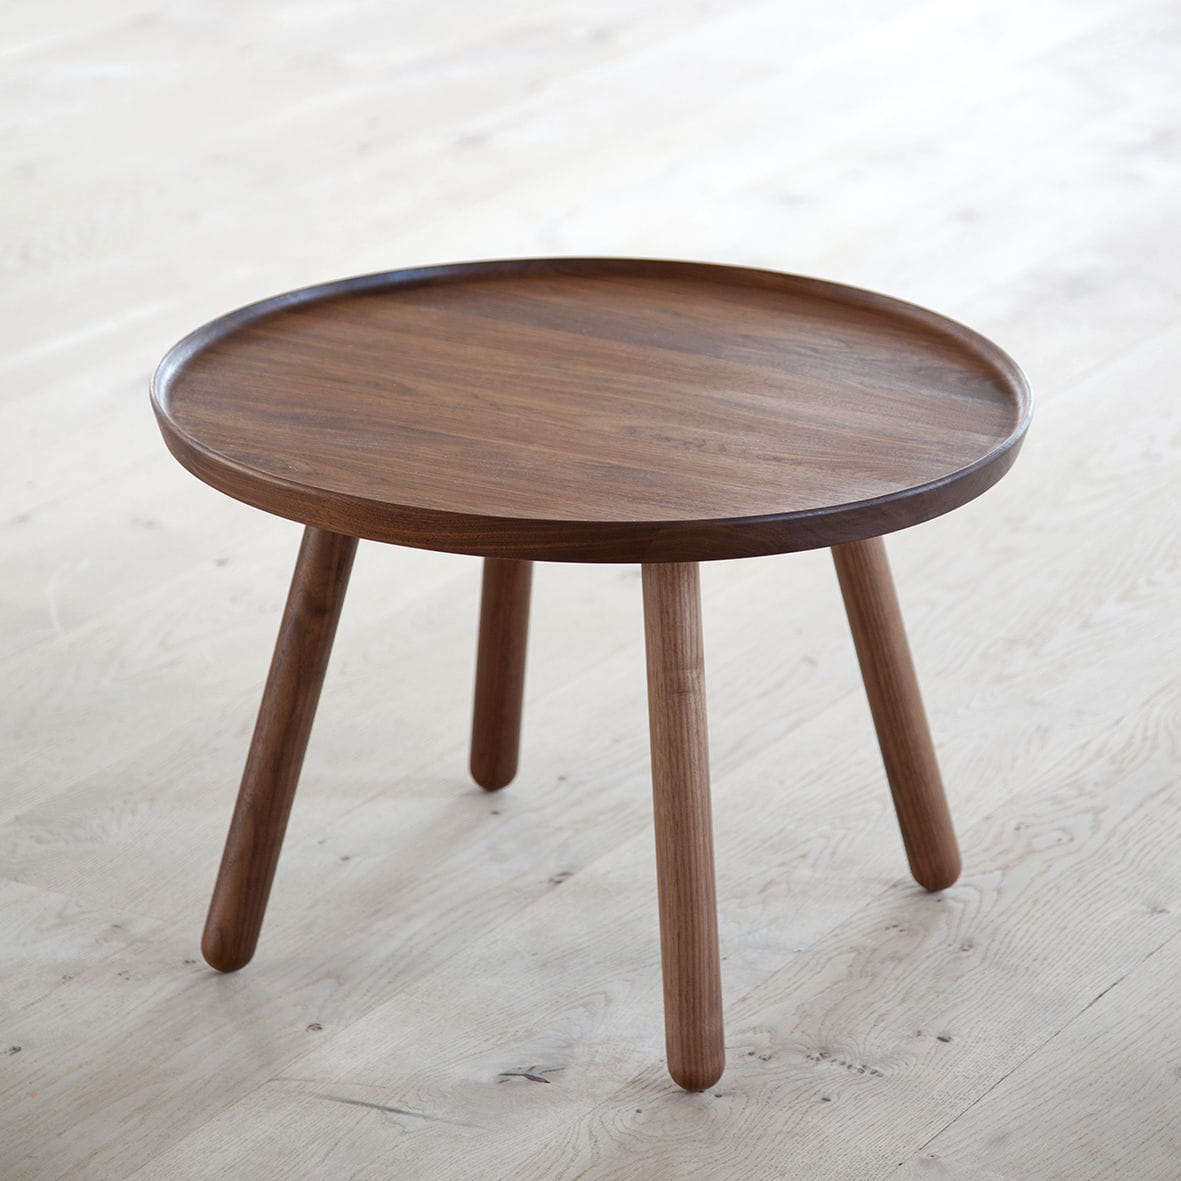 Awesome ... Scandinavian Design Side Table / Wooden / Round / By Finn Juhl PELICAN  ONE COLLECTION ...